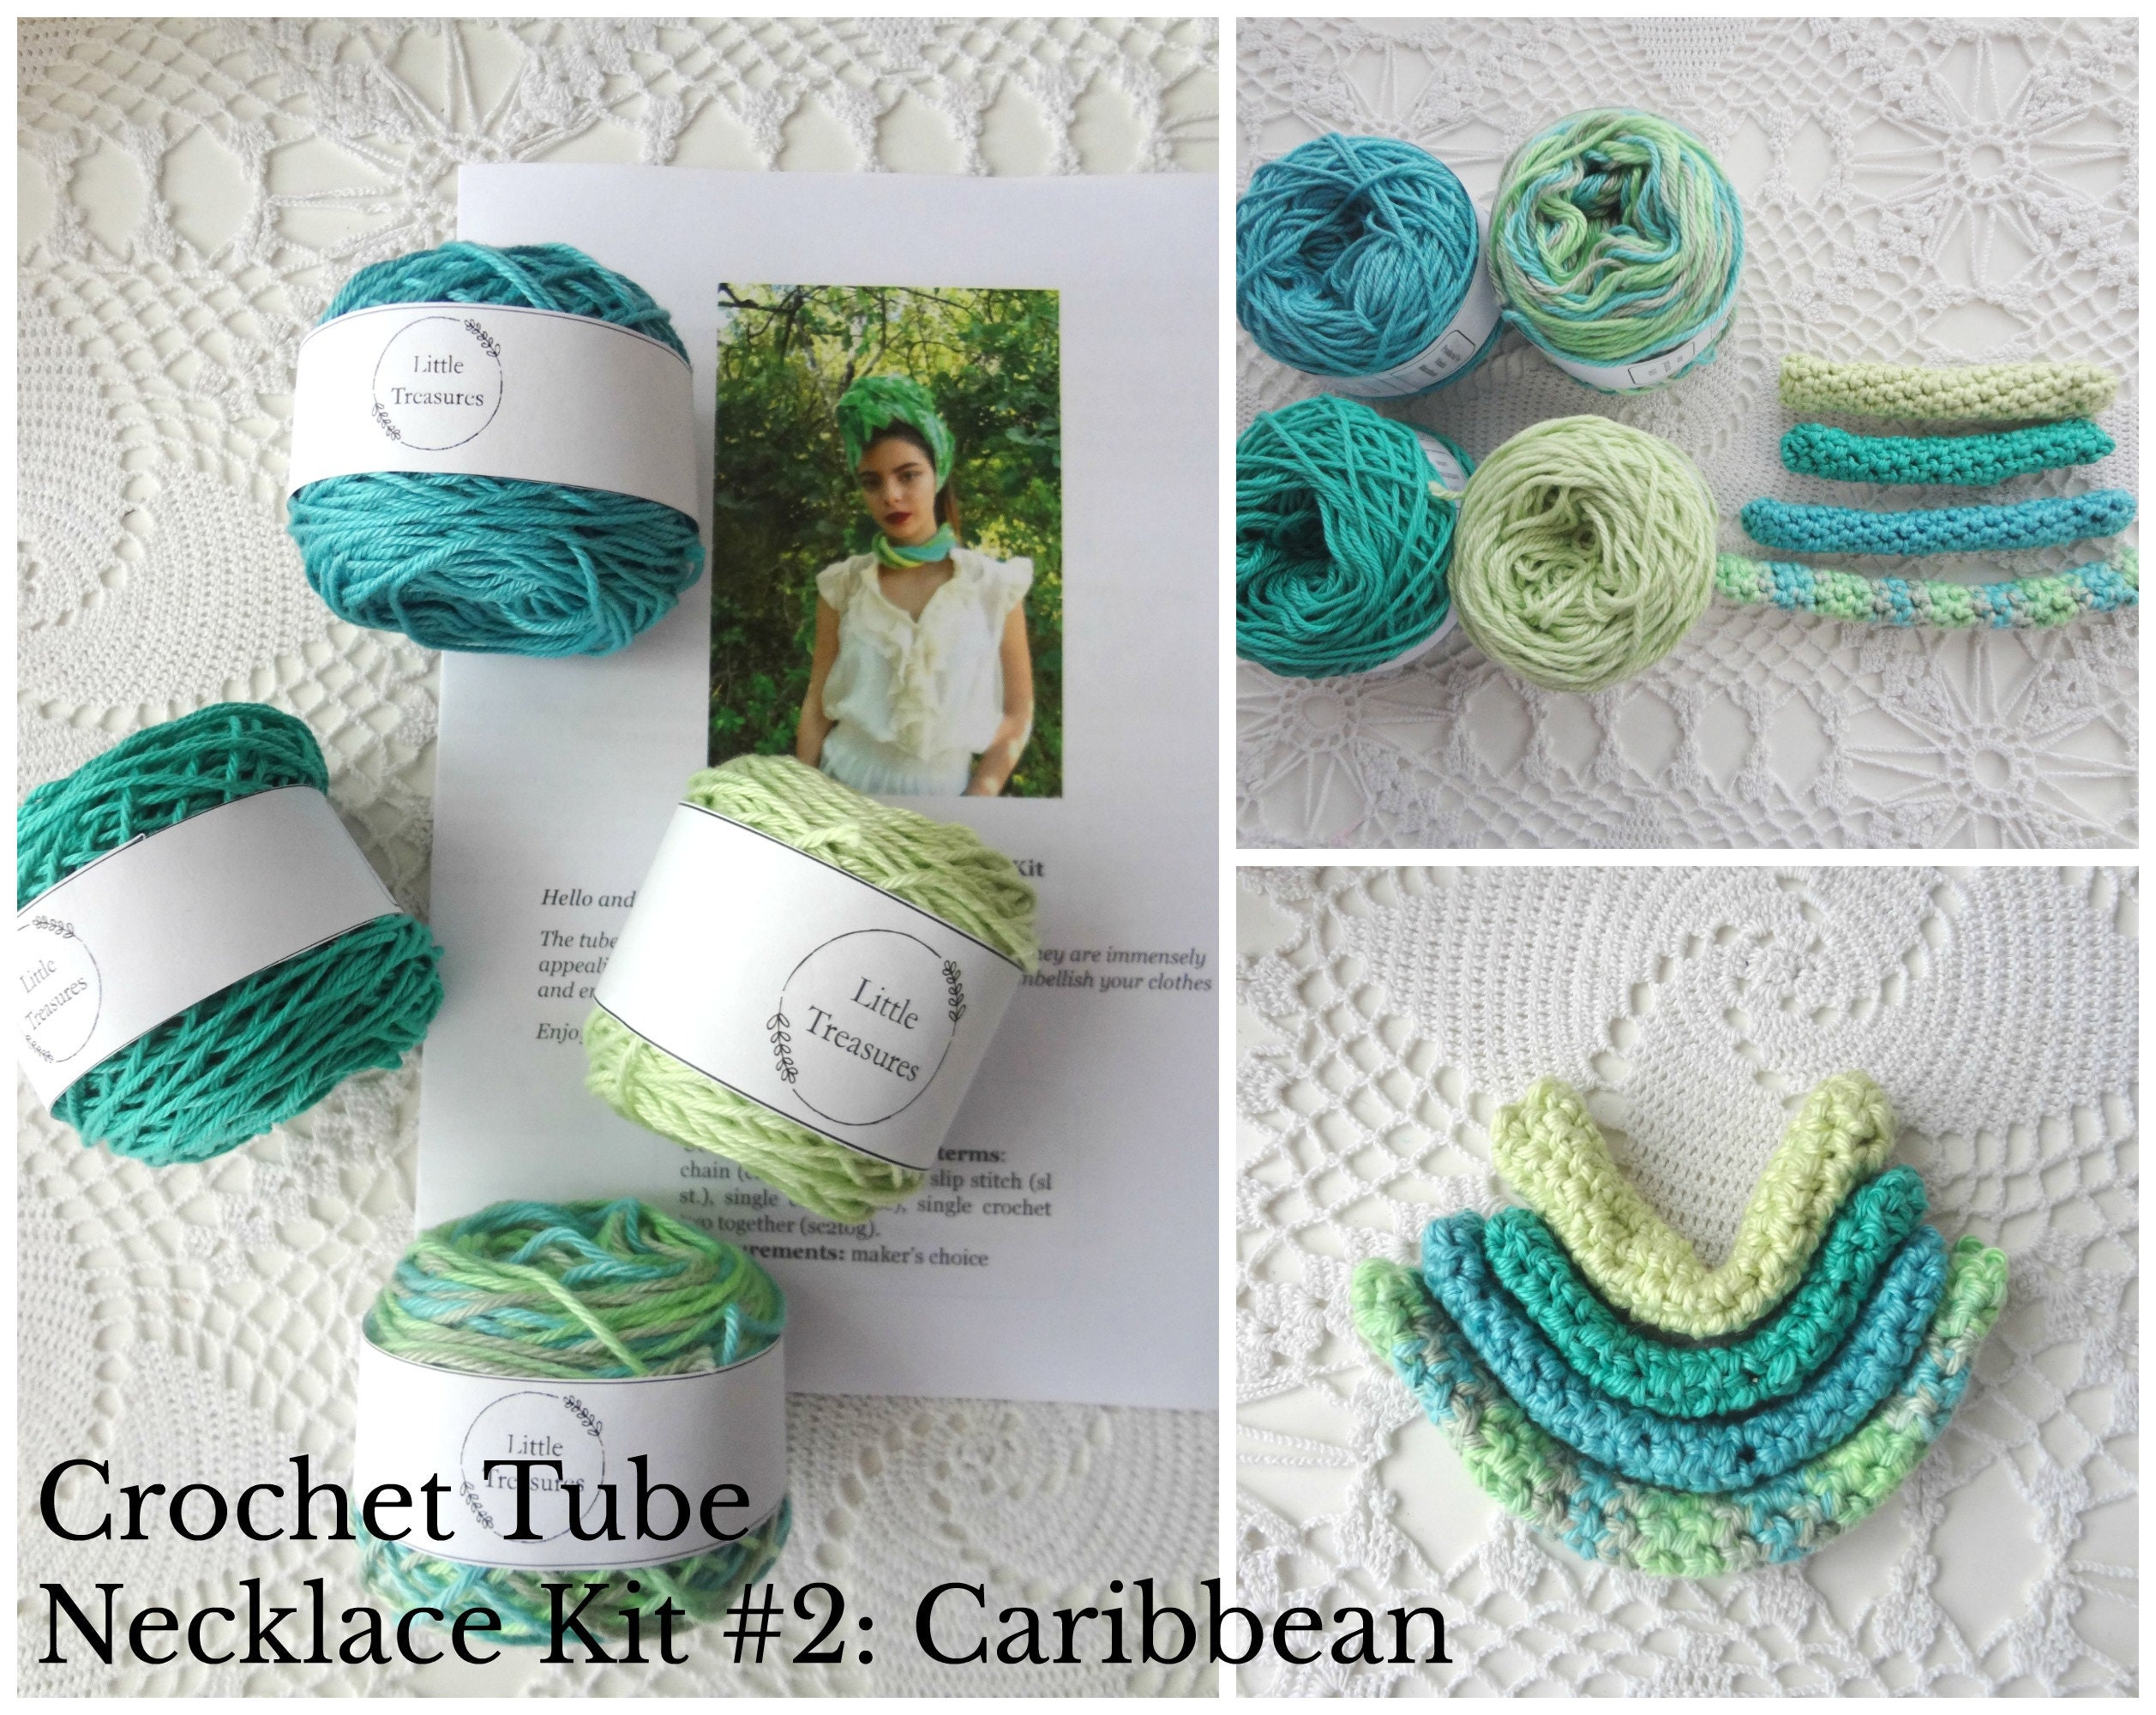 Crochet Tube Necklace Kit Yarn Pattern 2caribbeancrochet Etsy